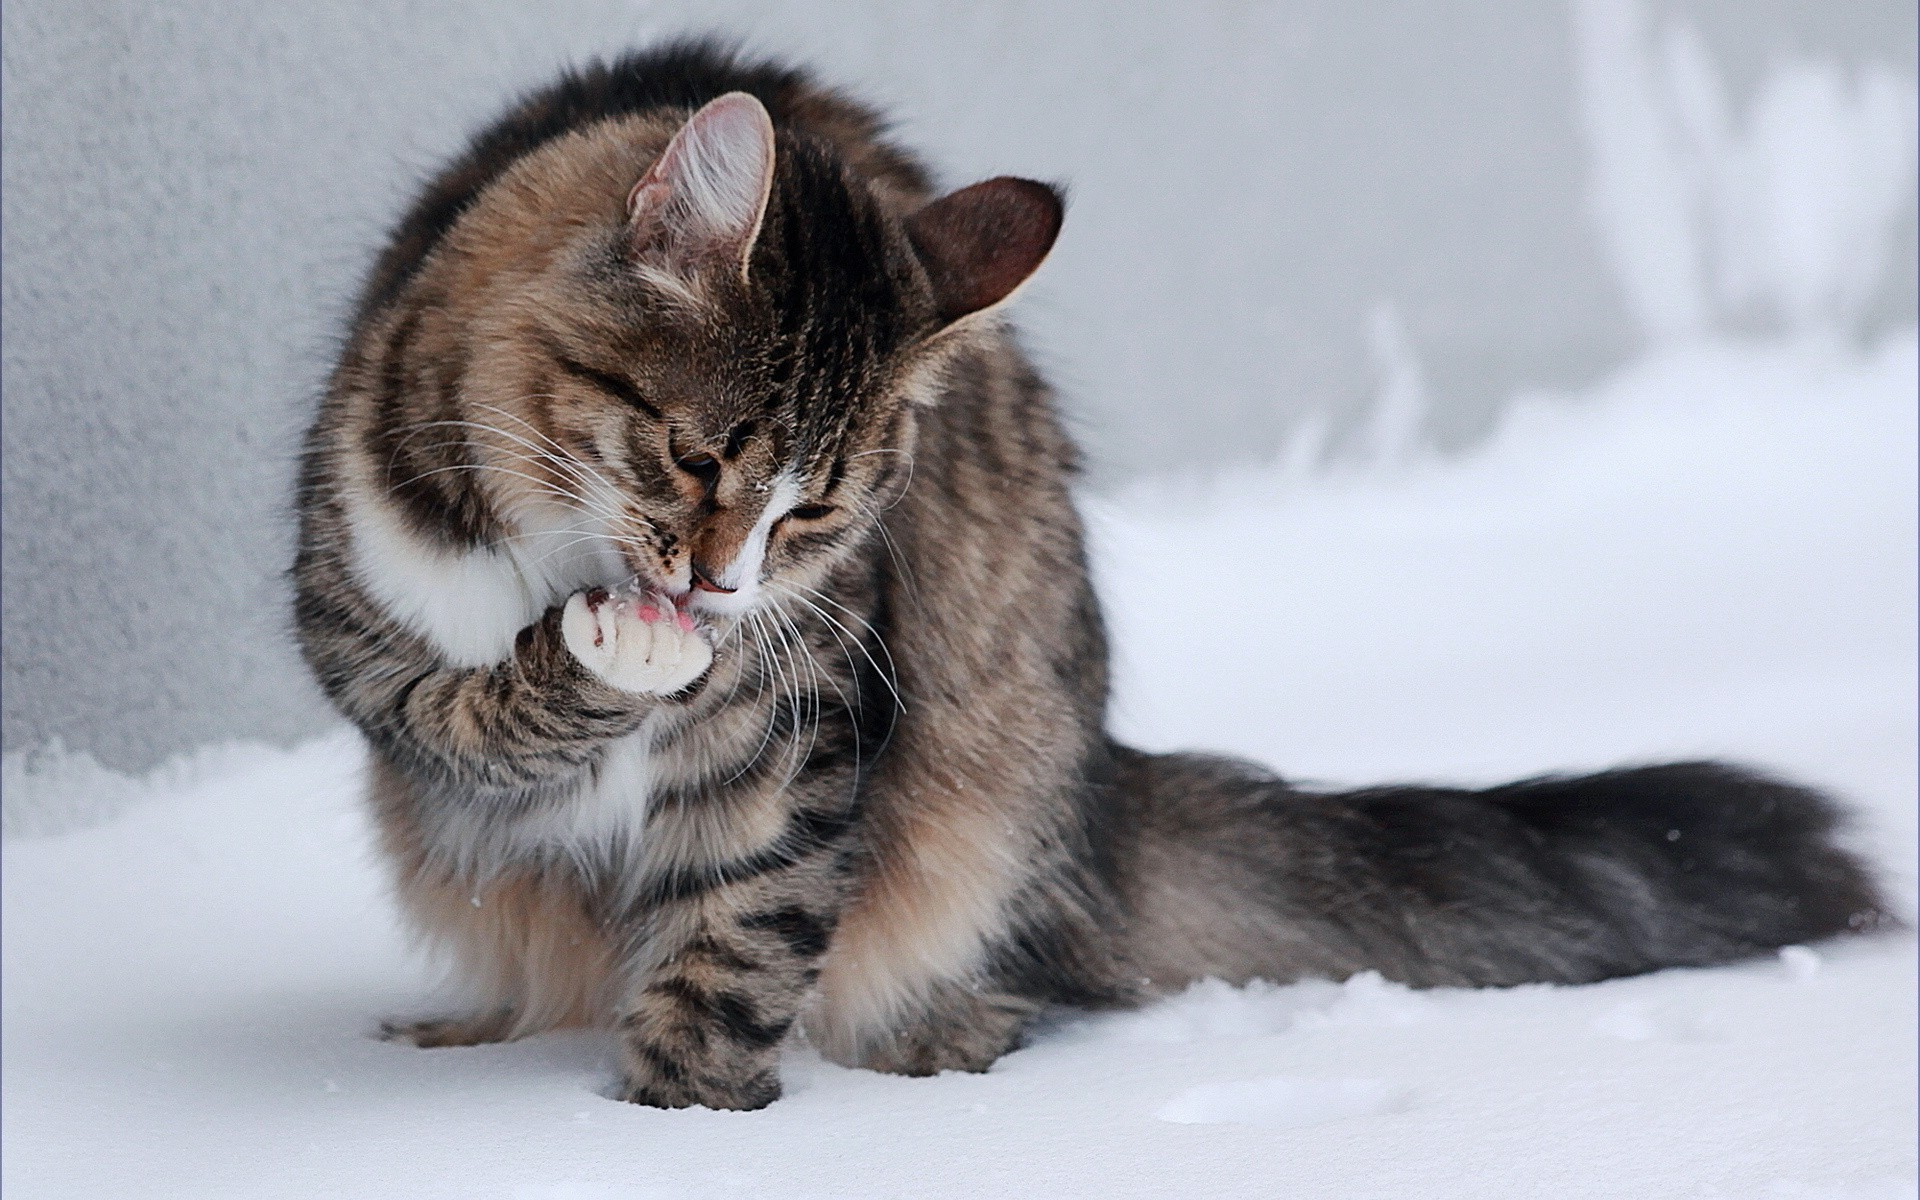 Cat licking its paws